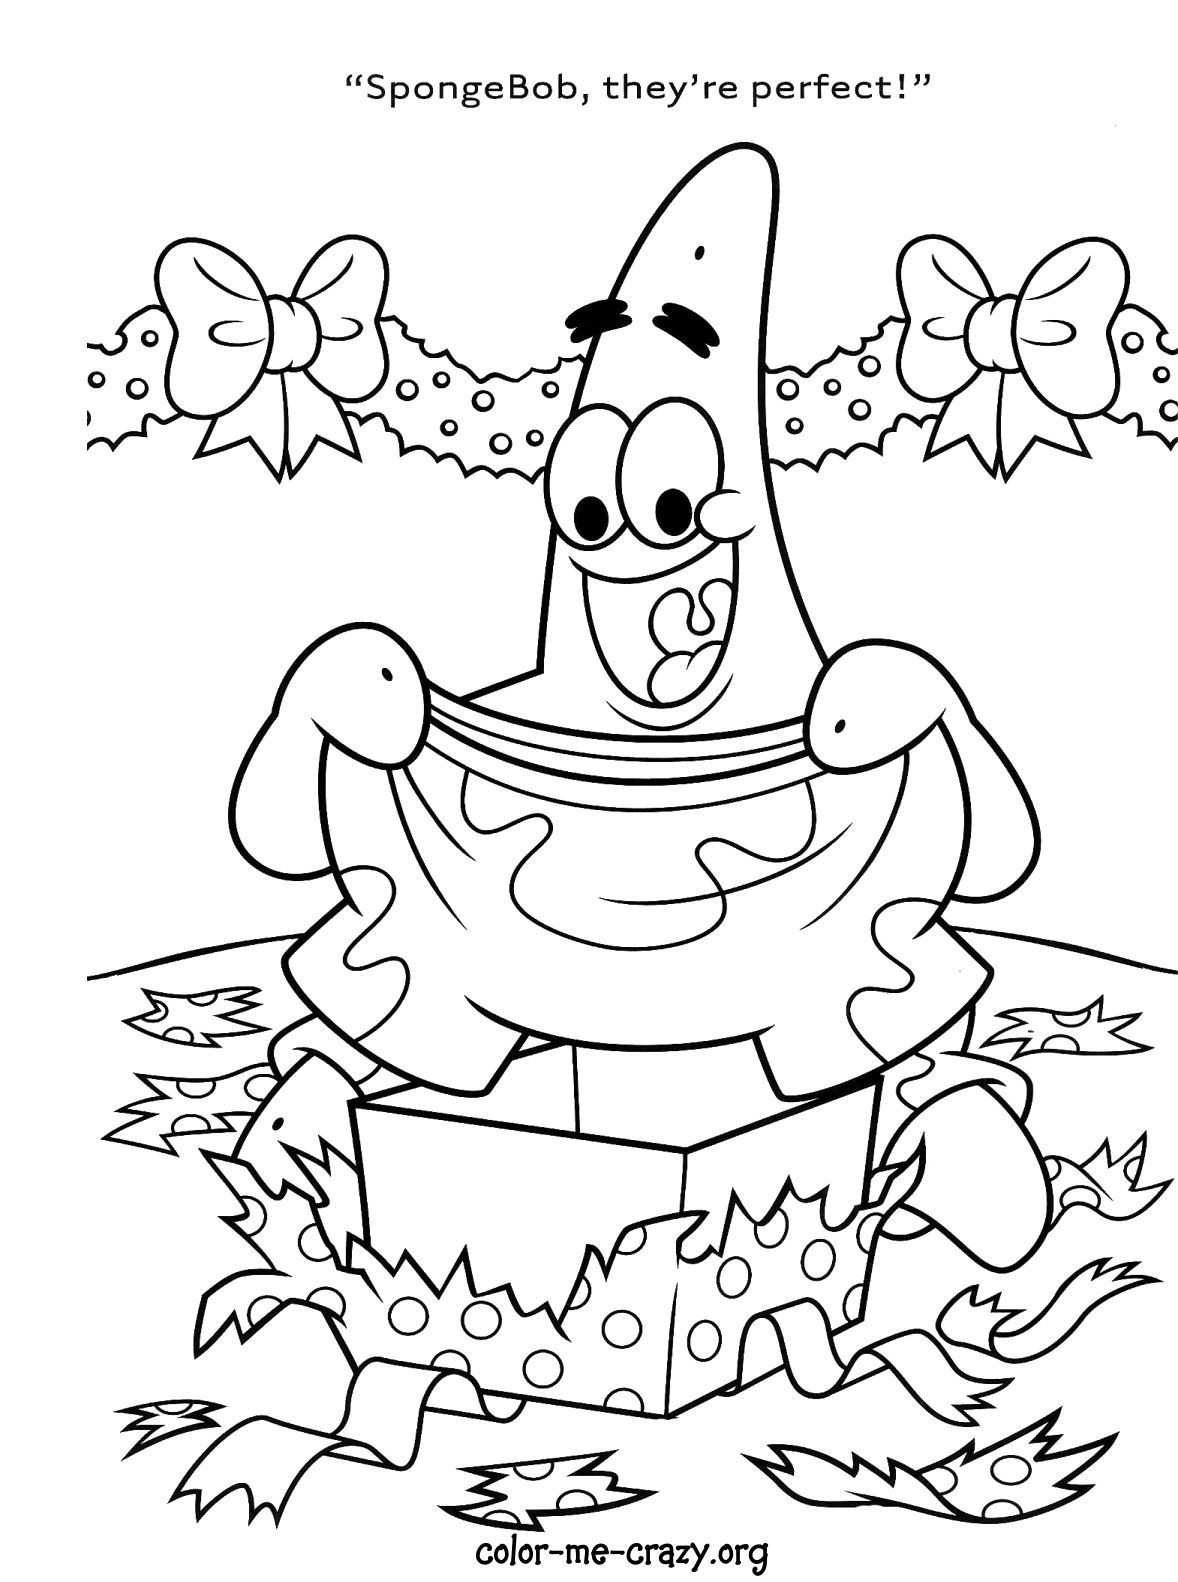 Coloring Pages For You Christmas Coloring Pages Printable Christmas Coloring Pages Free Christmas Coloring Pages